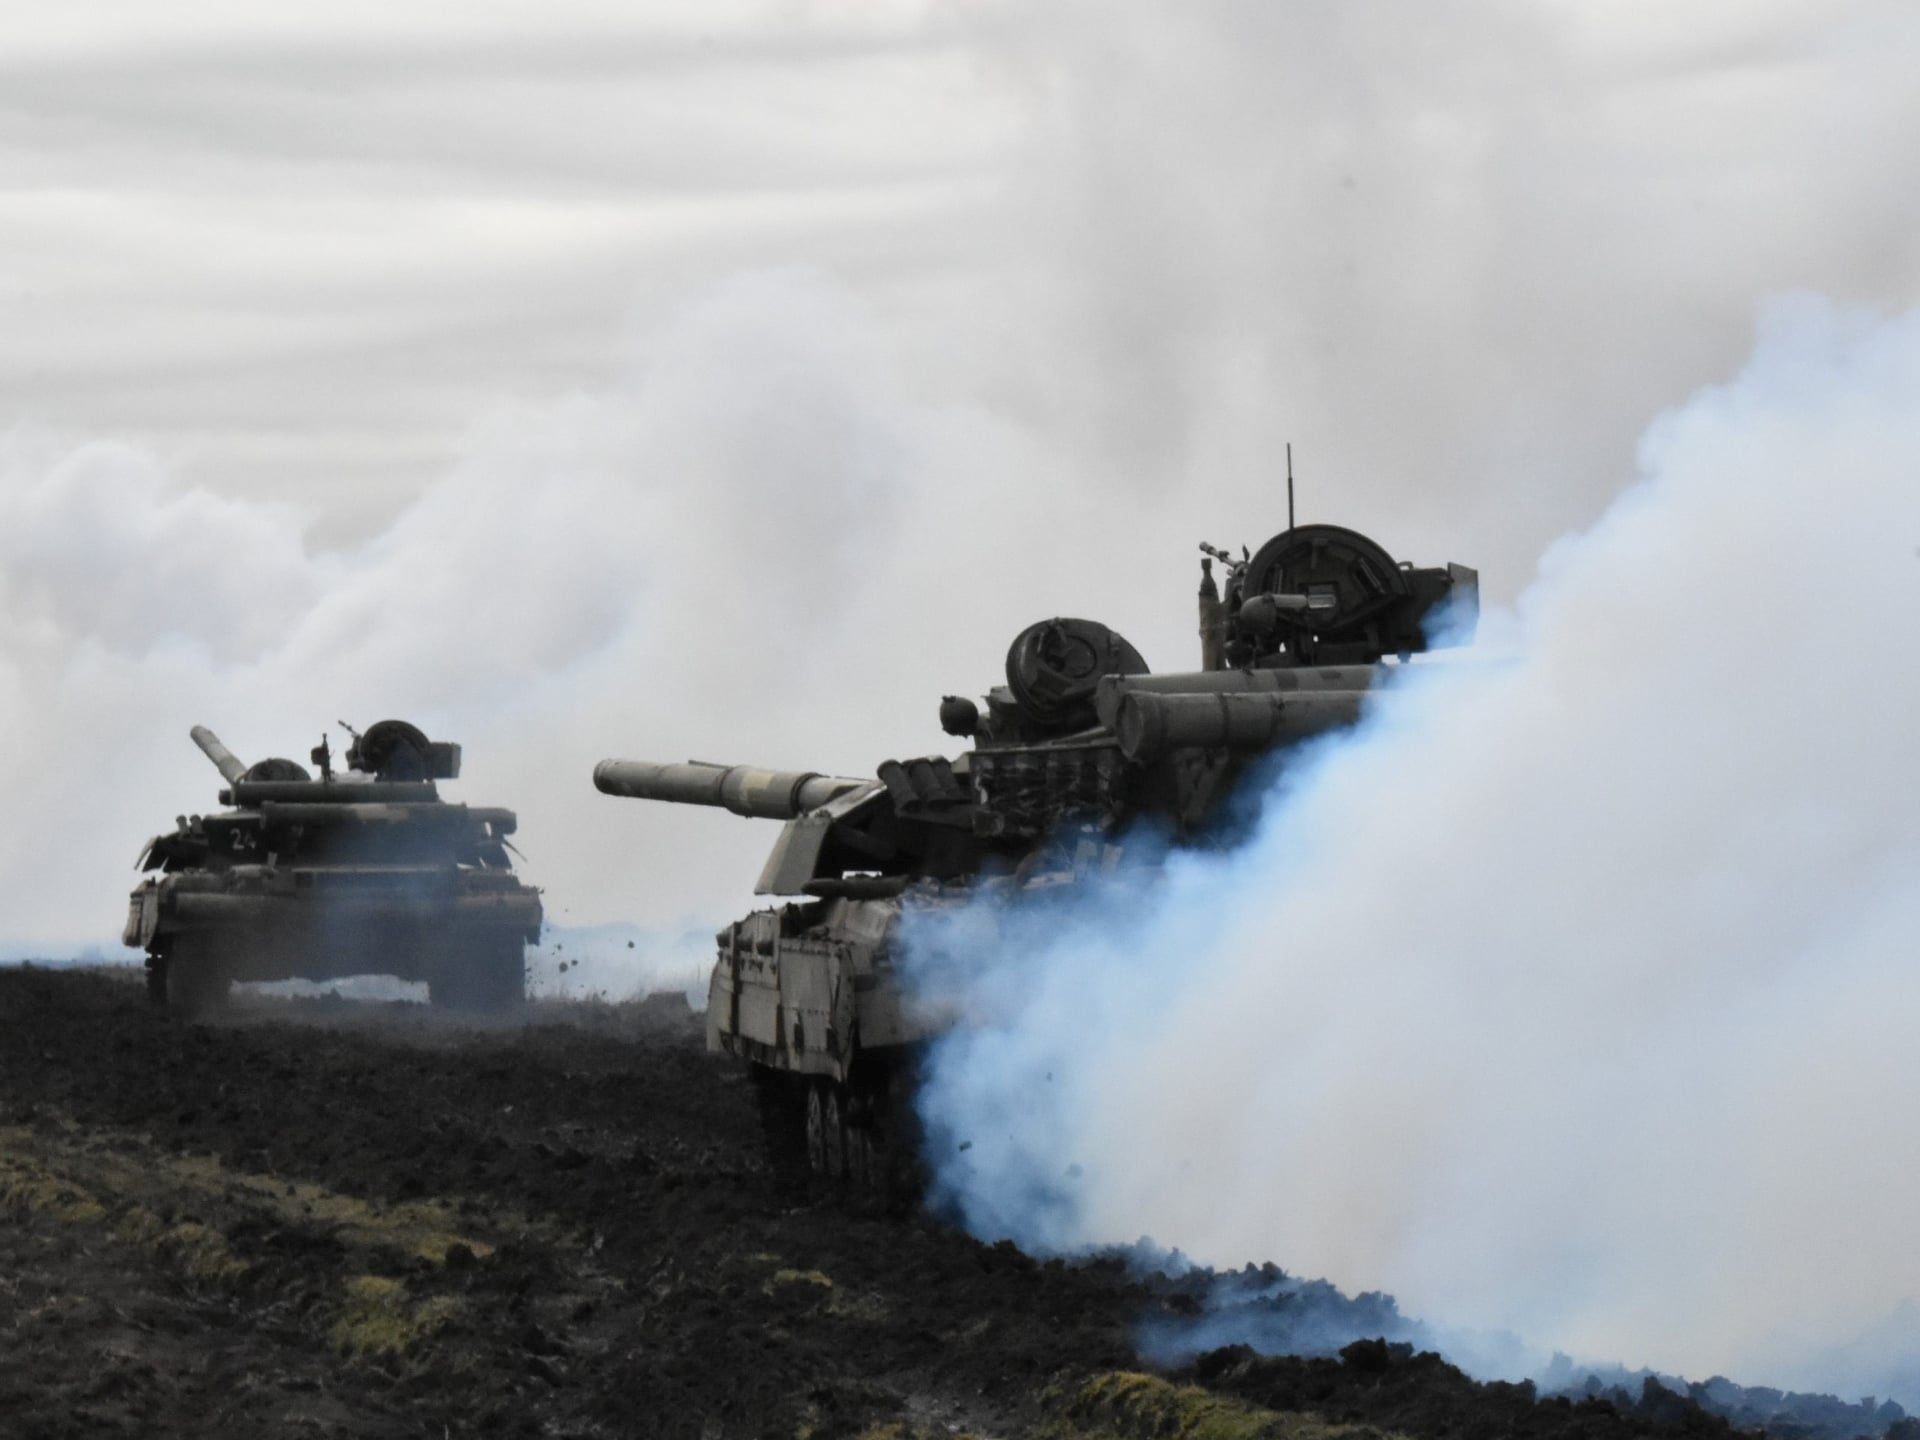 Tanks of the Ukrainian Armed Forces are seen during drills at an unknown location near the border of Russian-annexed Crimea, Ukraine, in this handout picture released by the General Staff of the Armed Forces of Ukraine press service April 14, 2021.  Press Service General Staff of the Armed Forces of Ukraine/Handout via REUTERS